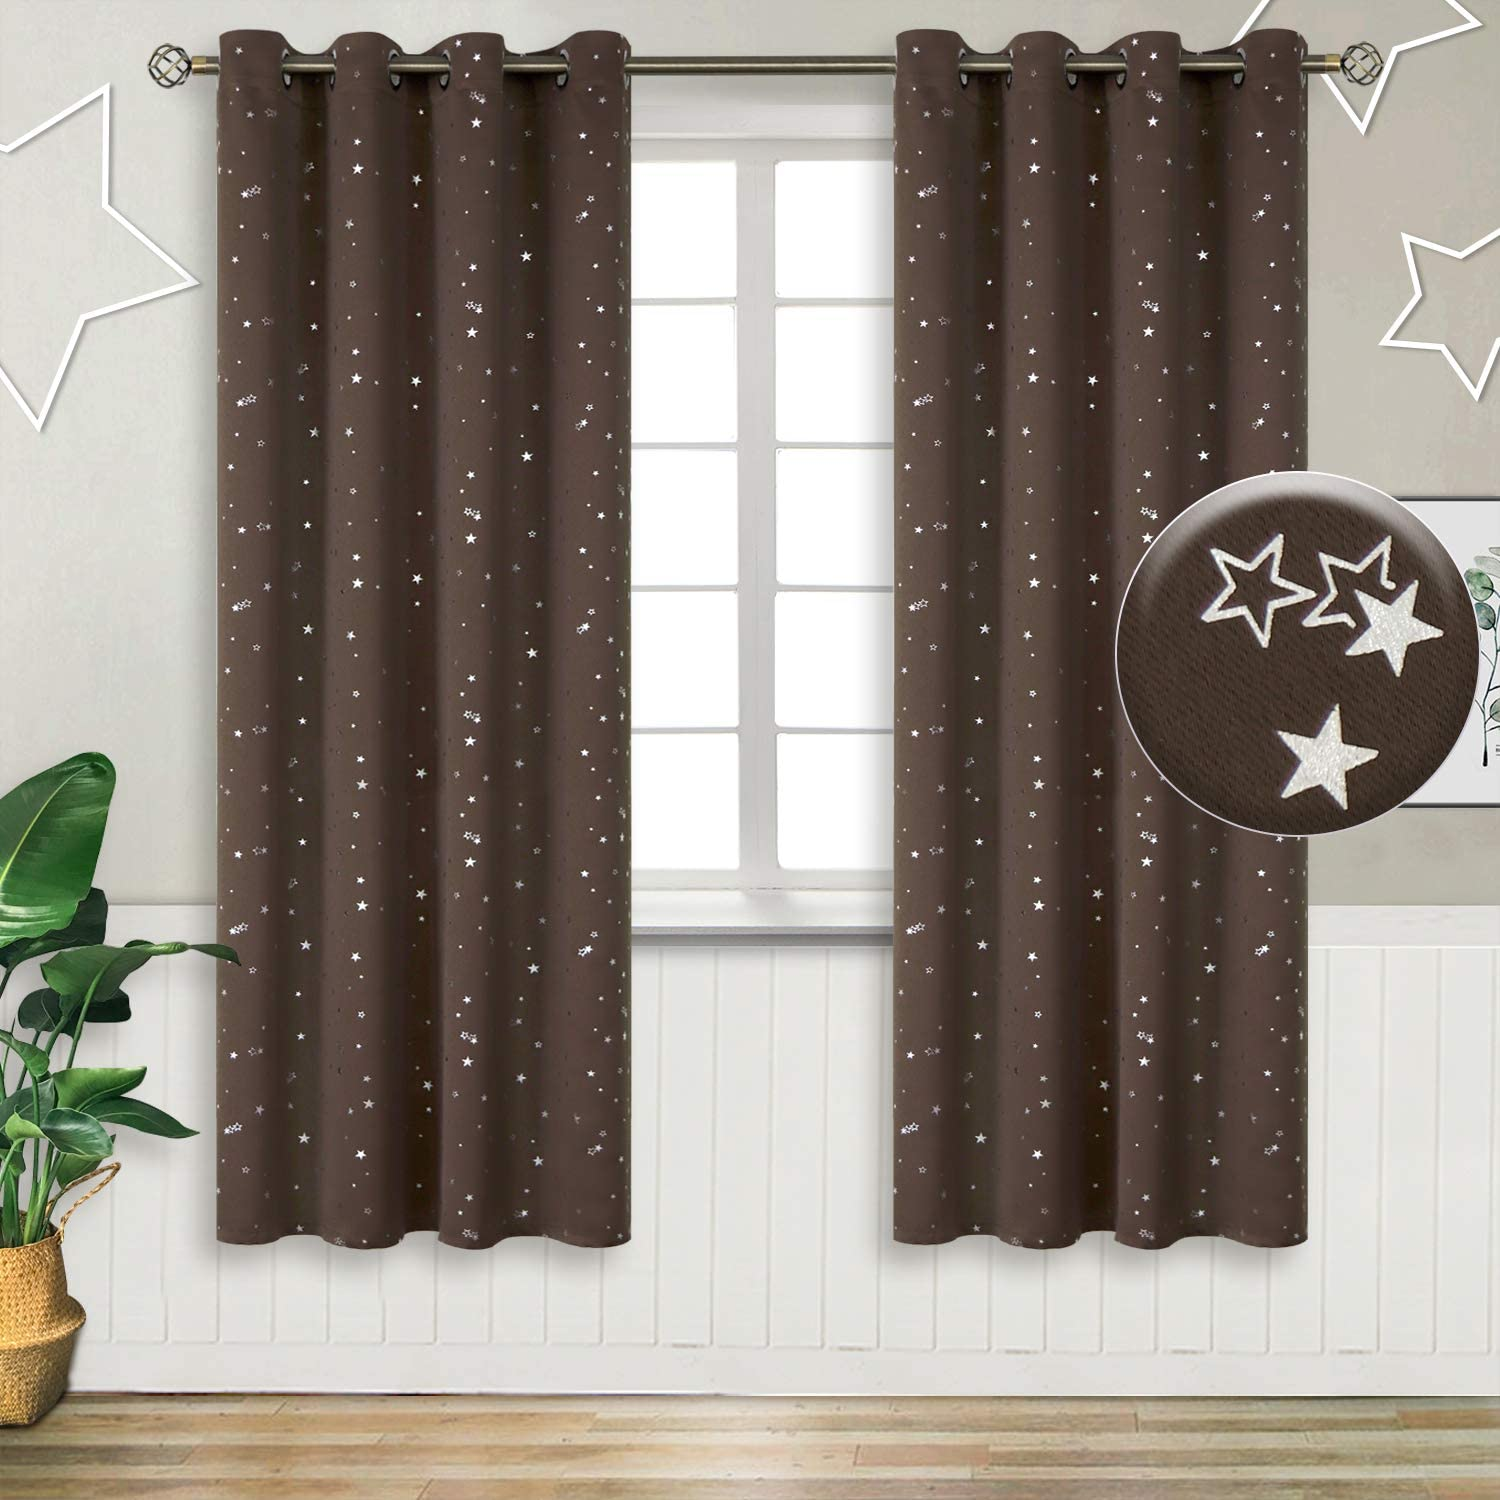 Eyelet Thermal Insulated Silver Star Print Room Darkening Curtains for Living Room BGment Kids Blackout Curtains for Bedroom 2 Panels W55 X L69 Inch, Brown